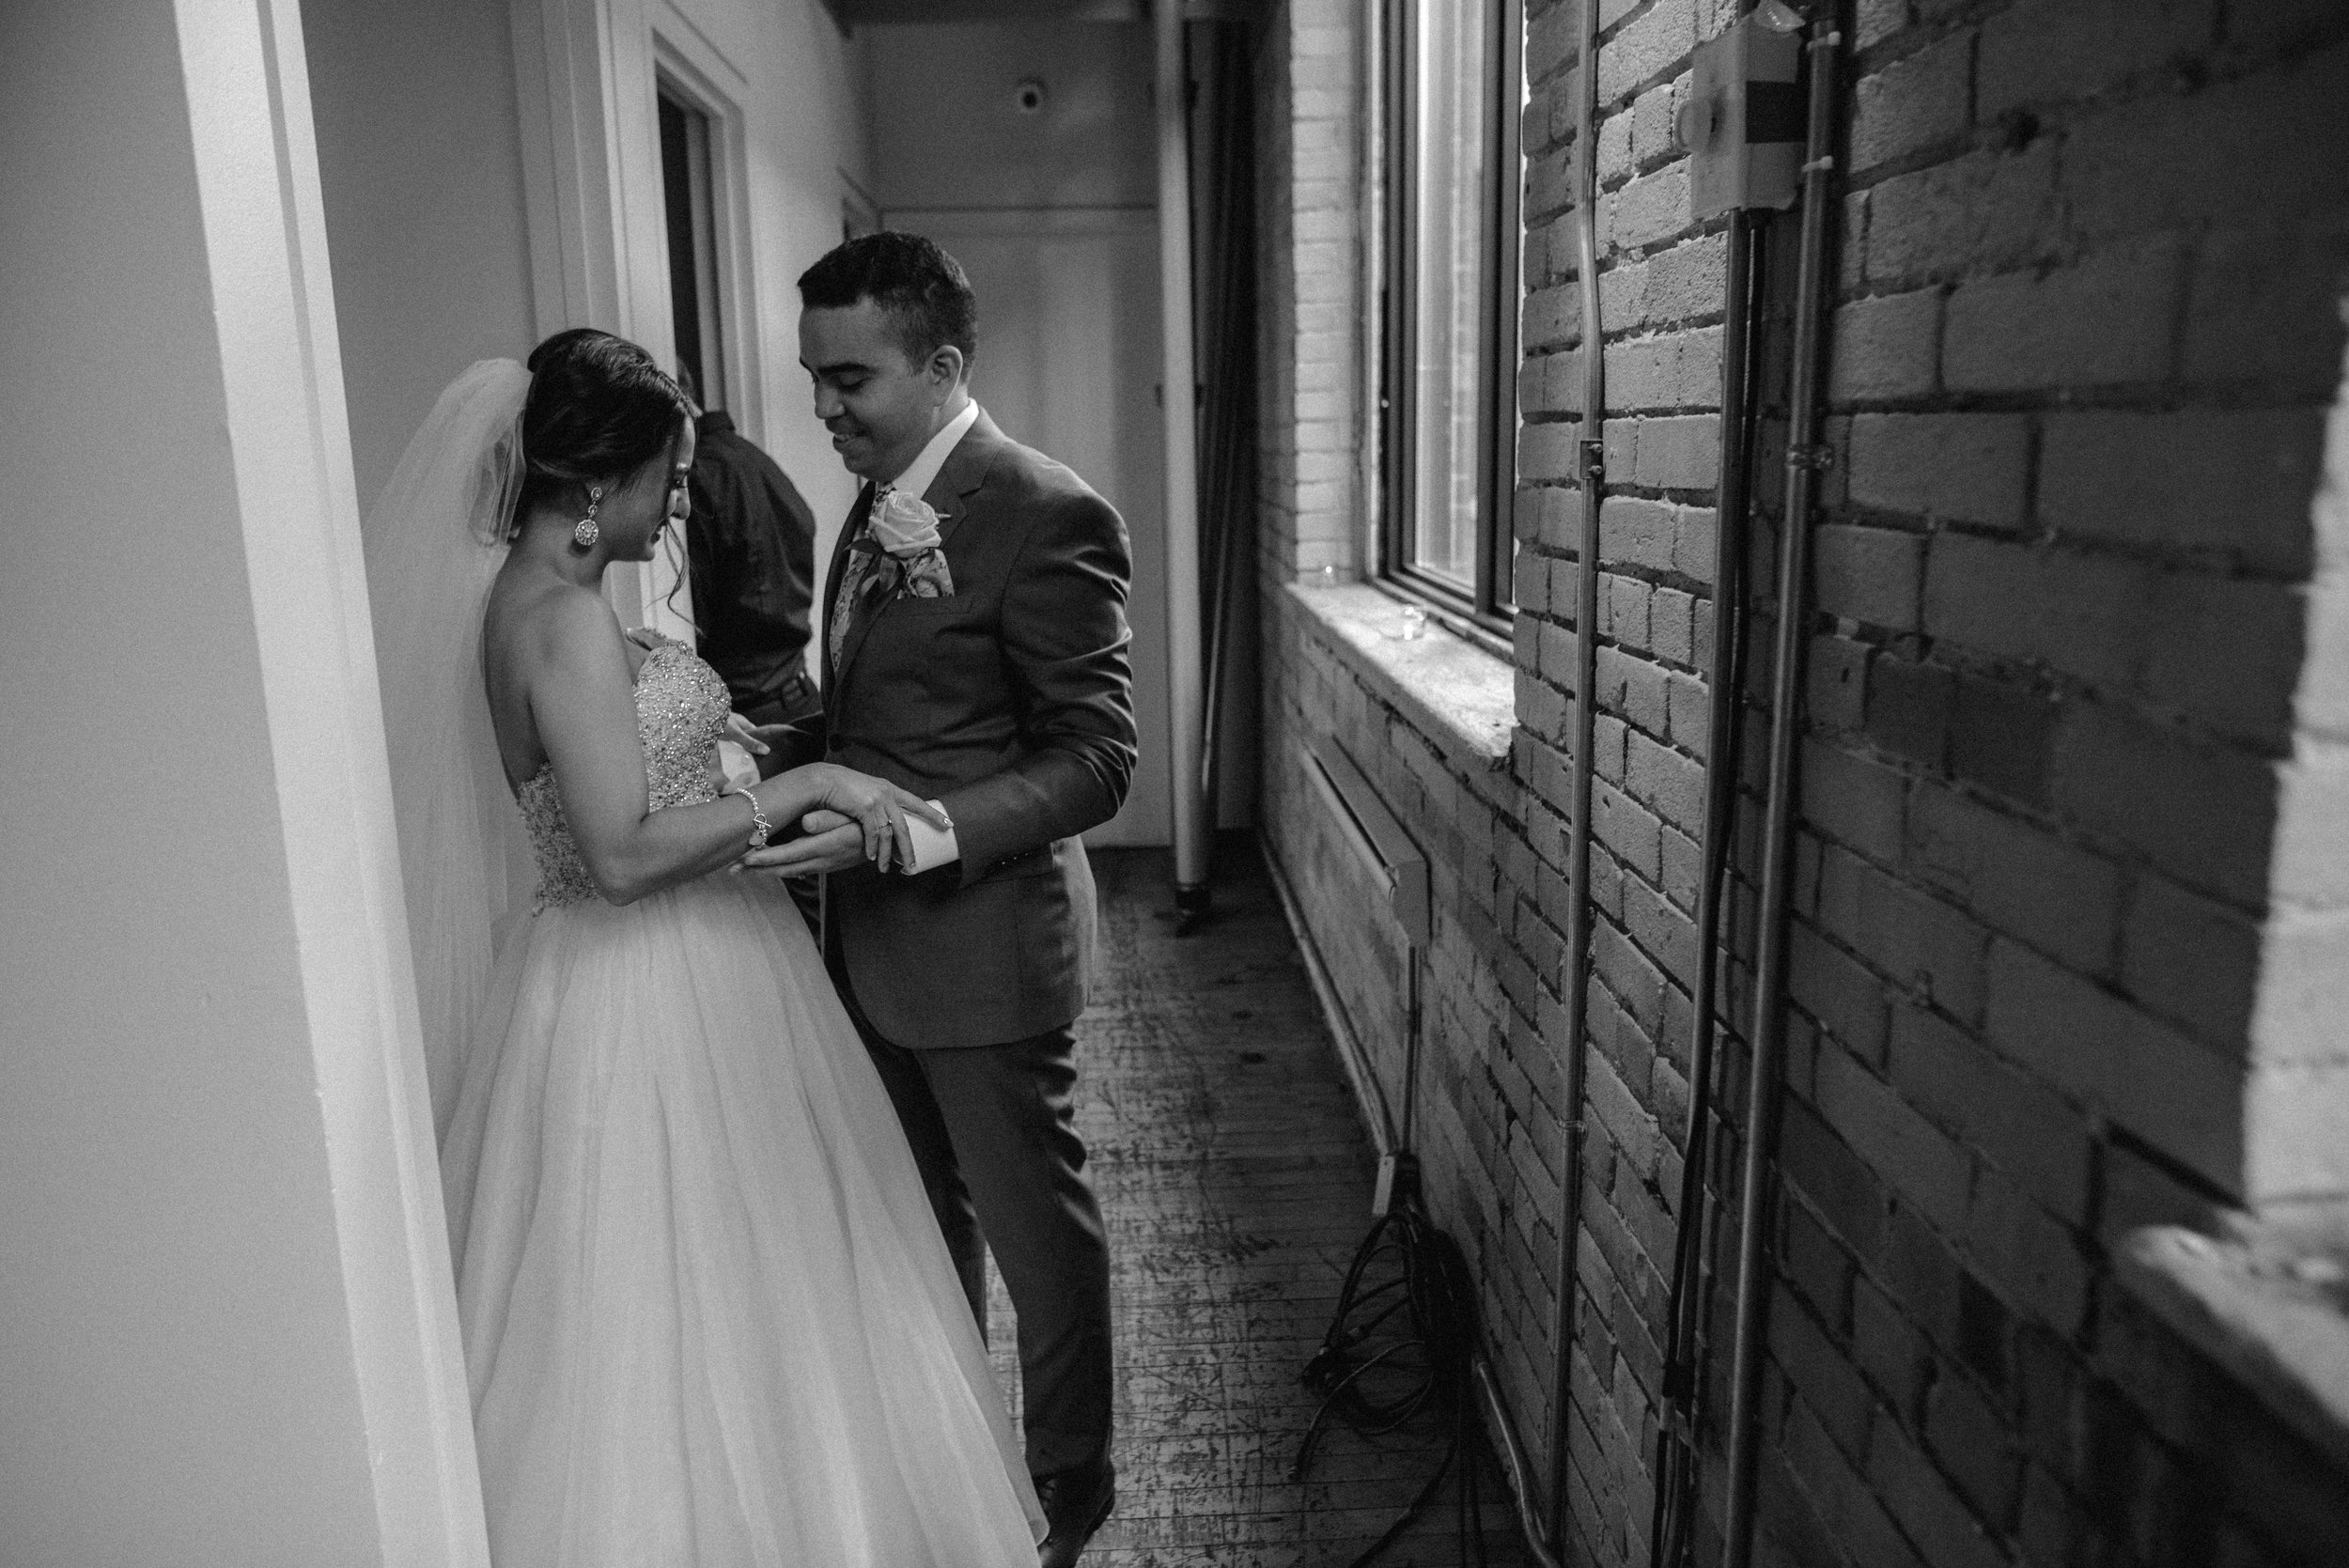 mariage_photographe_toronto_gatineau_ottawa_photographer_wedding-34.jpg